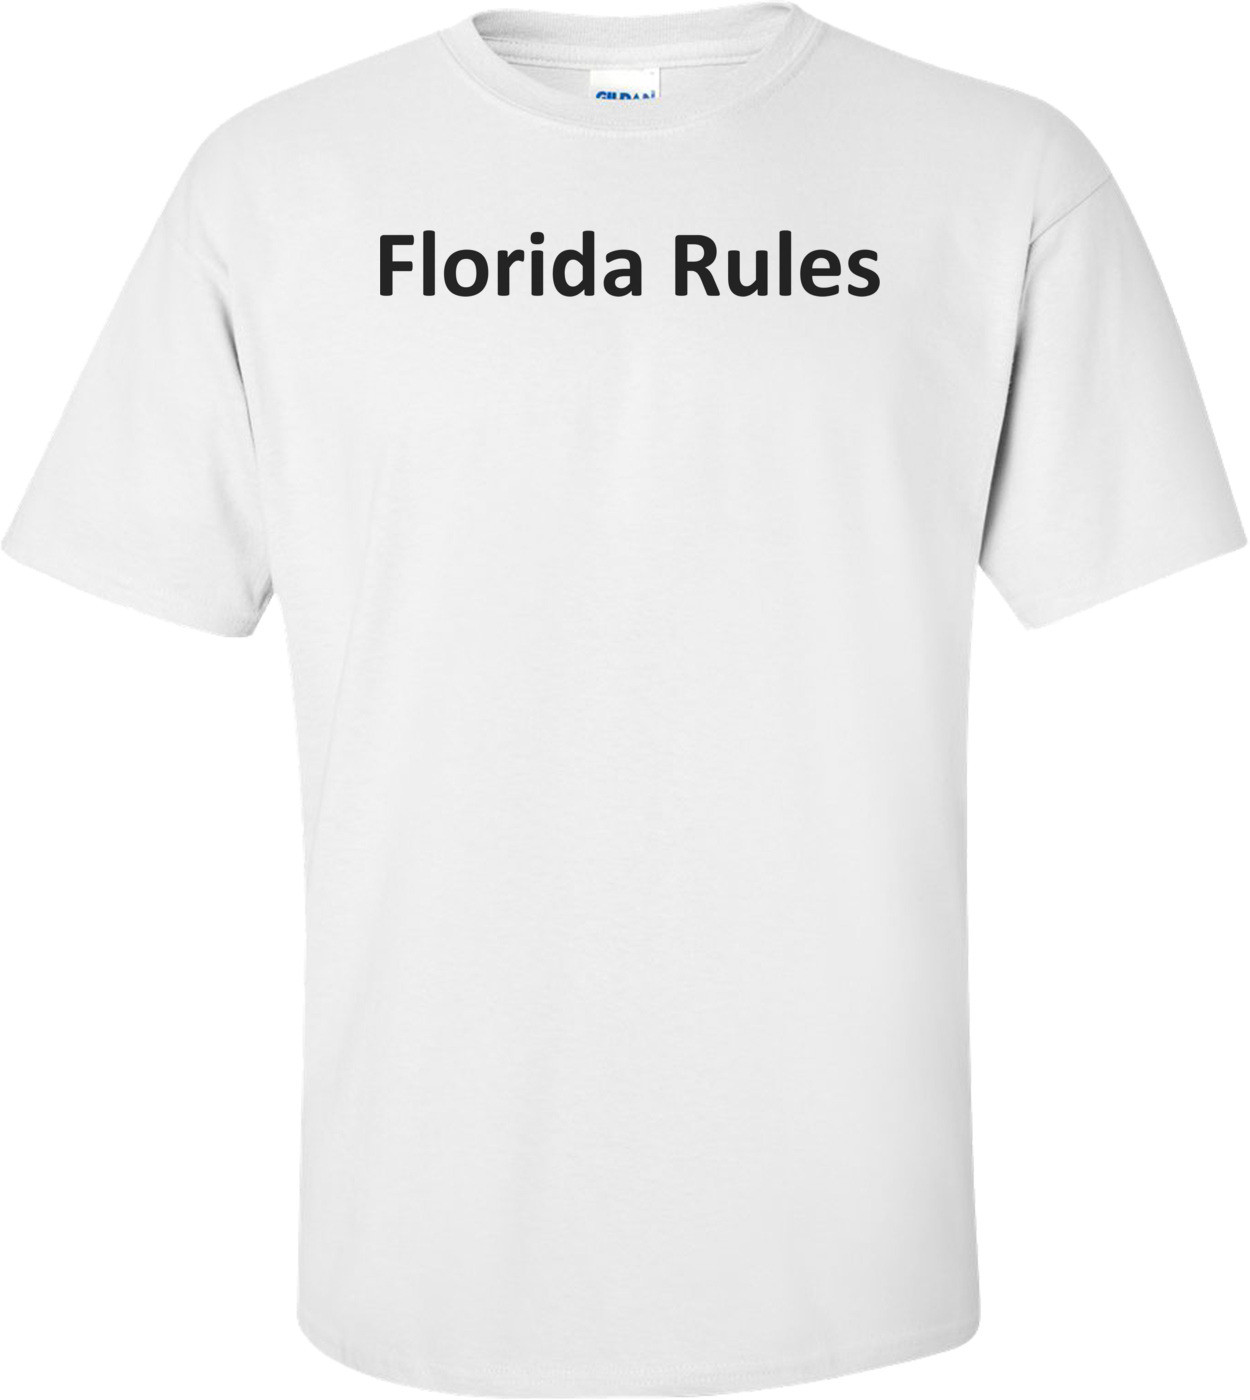 Florida Rules T-Shirt